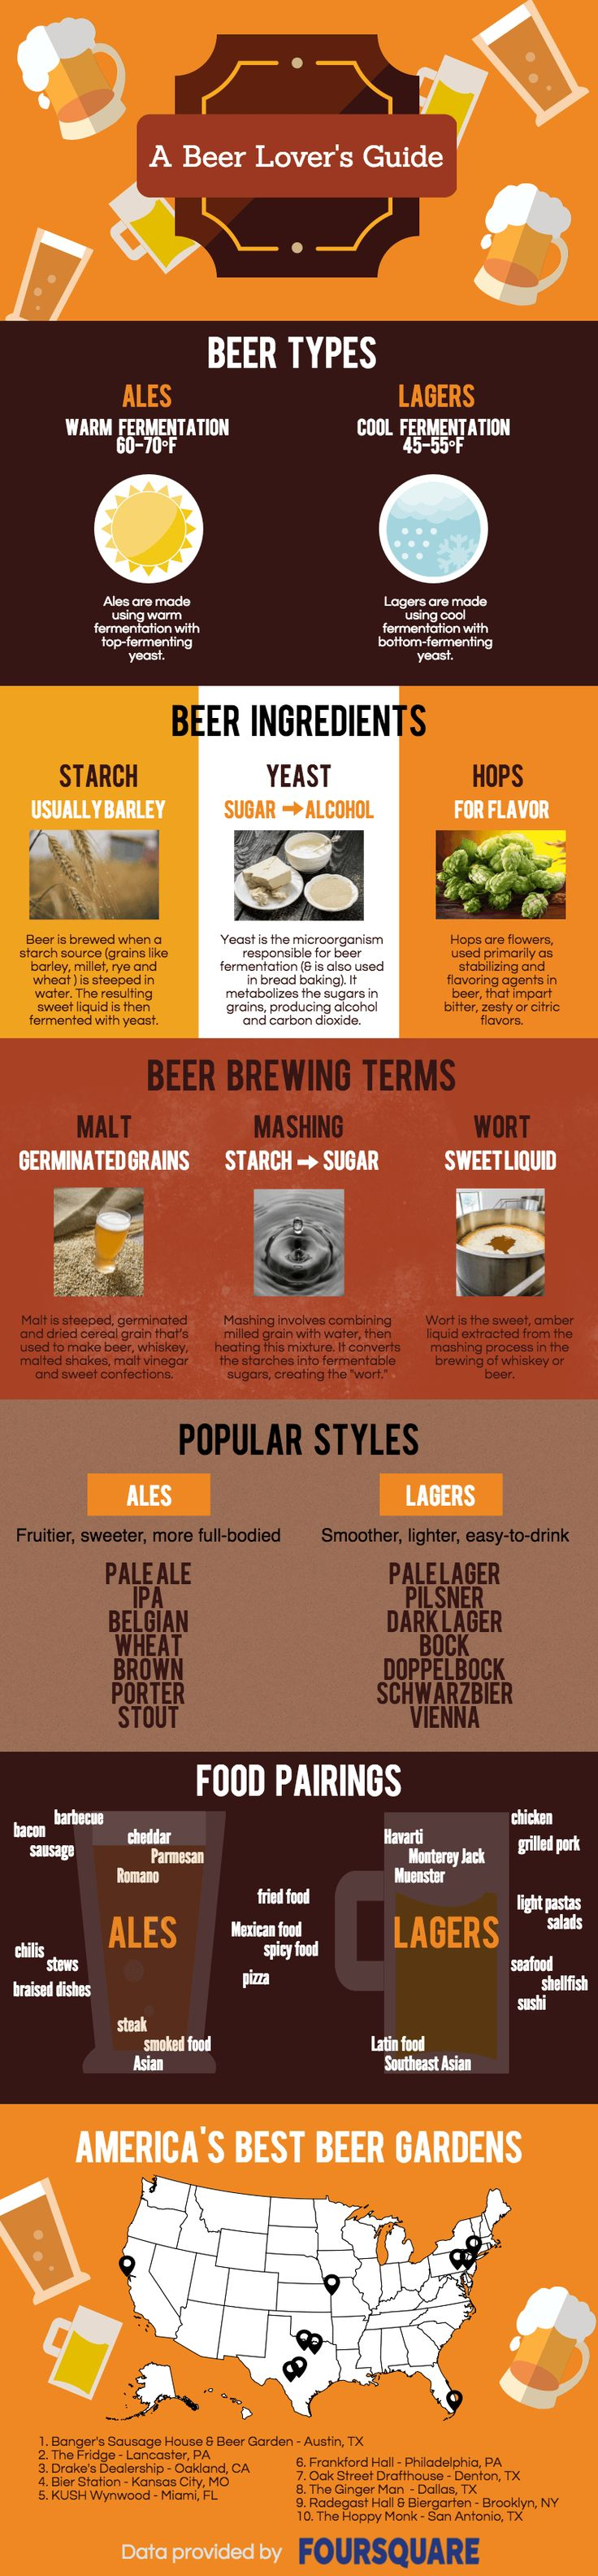 What'sAmerica's favorite alcoholic beverage? Beer, of course! If you're like us, you already know that anice cold,thirst-quenching brew can really hit the spot.But what is beer exactly?Check out the infographic below for everything you ever wanted to know about beers, including the two main types,brewing terms, popular styles and the best foods to enjoy them with. #Beer #beernews #beereducation